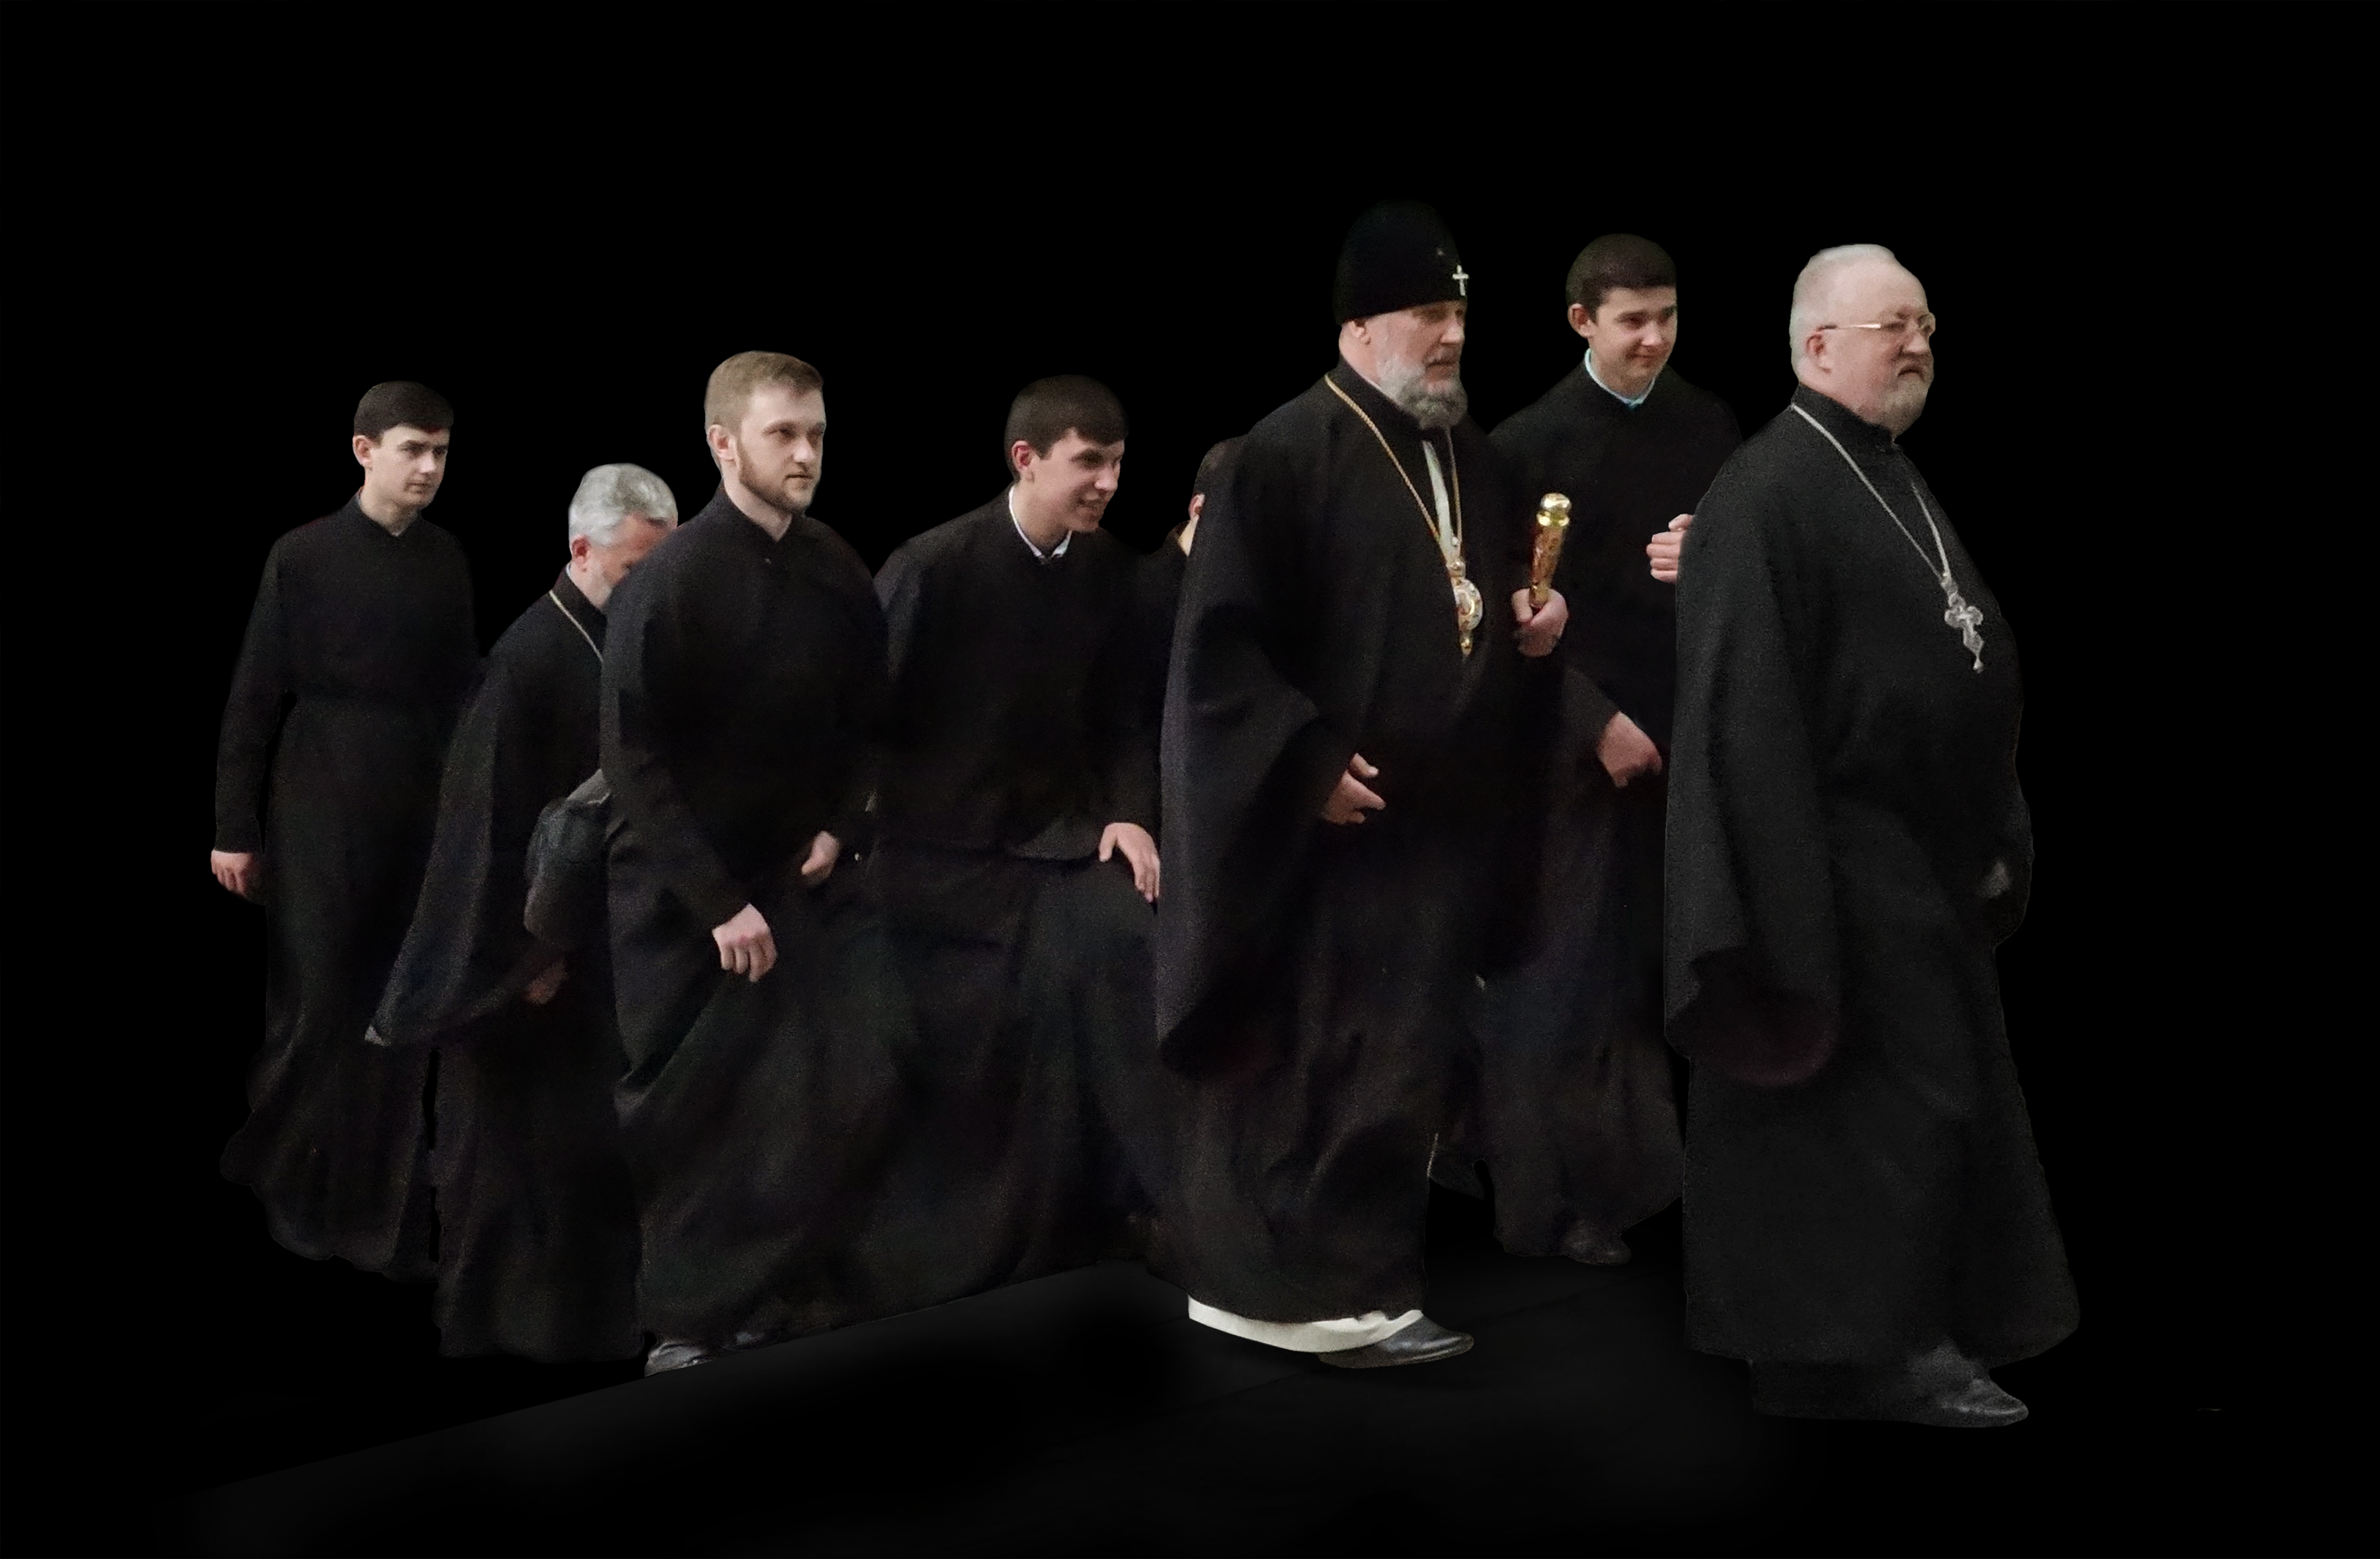 1a gaggle of priests